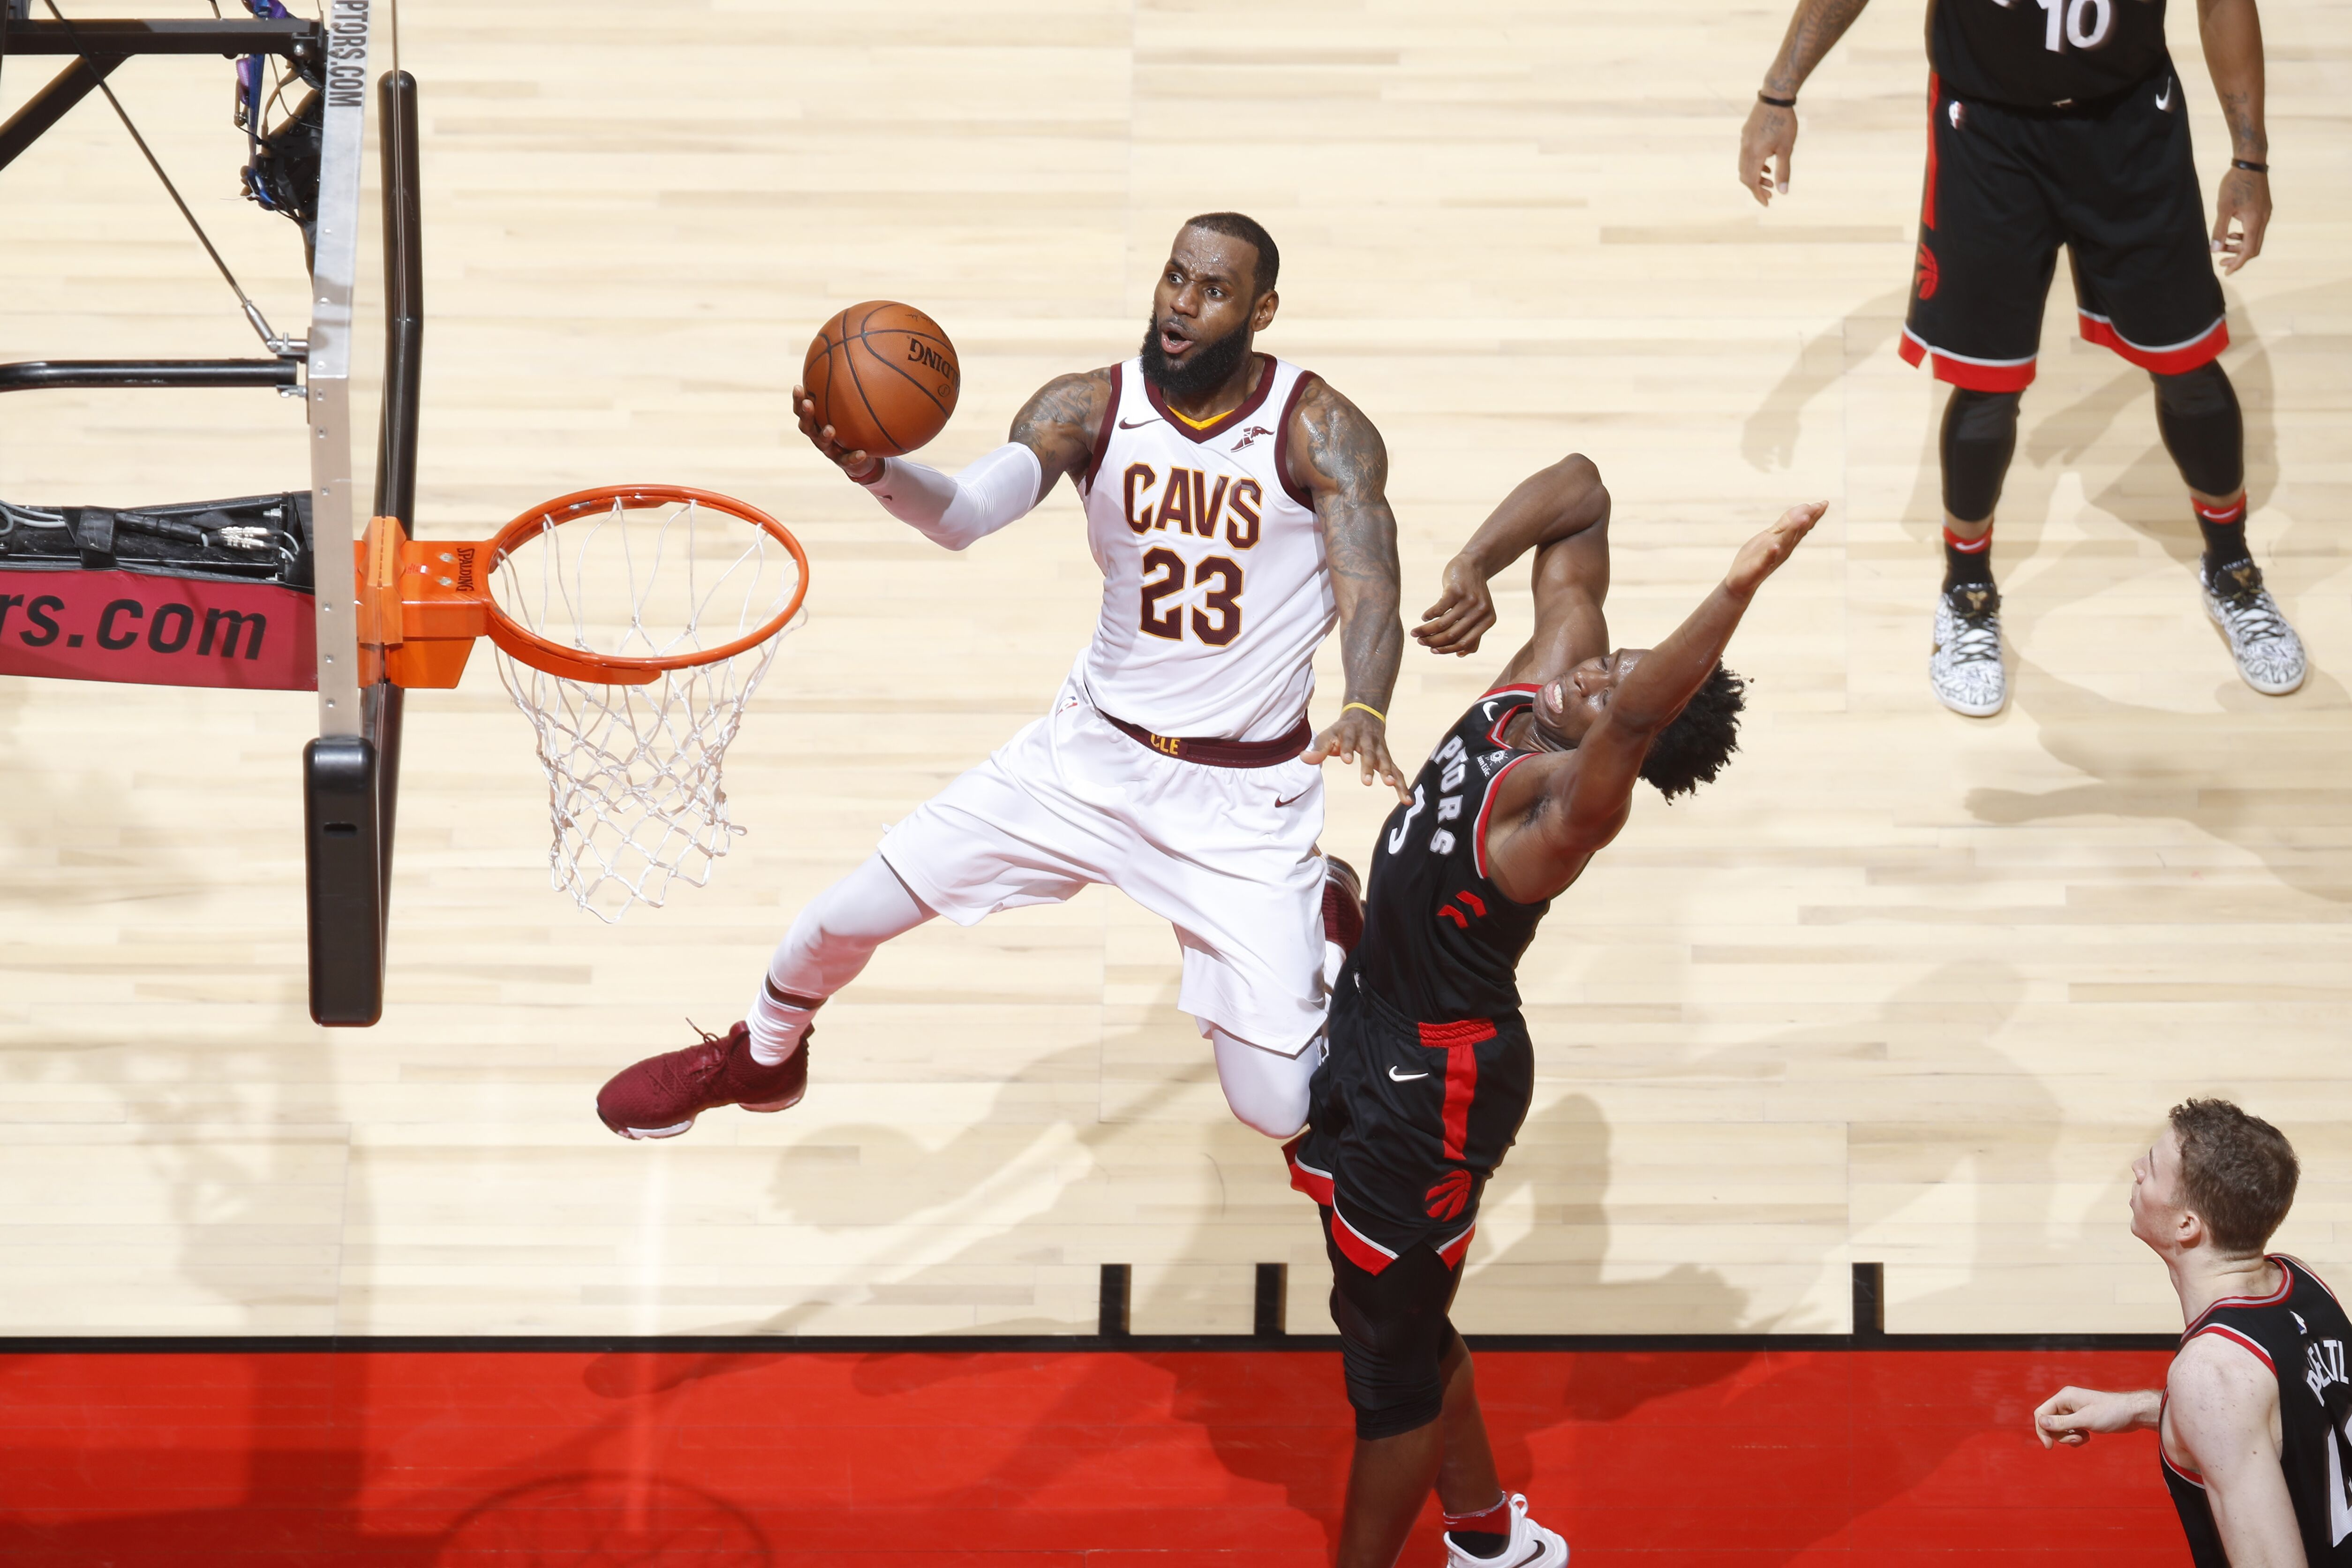 Cleveland Cavaliers If Cavs Don T Win It All Lebron James Will Leave